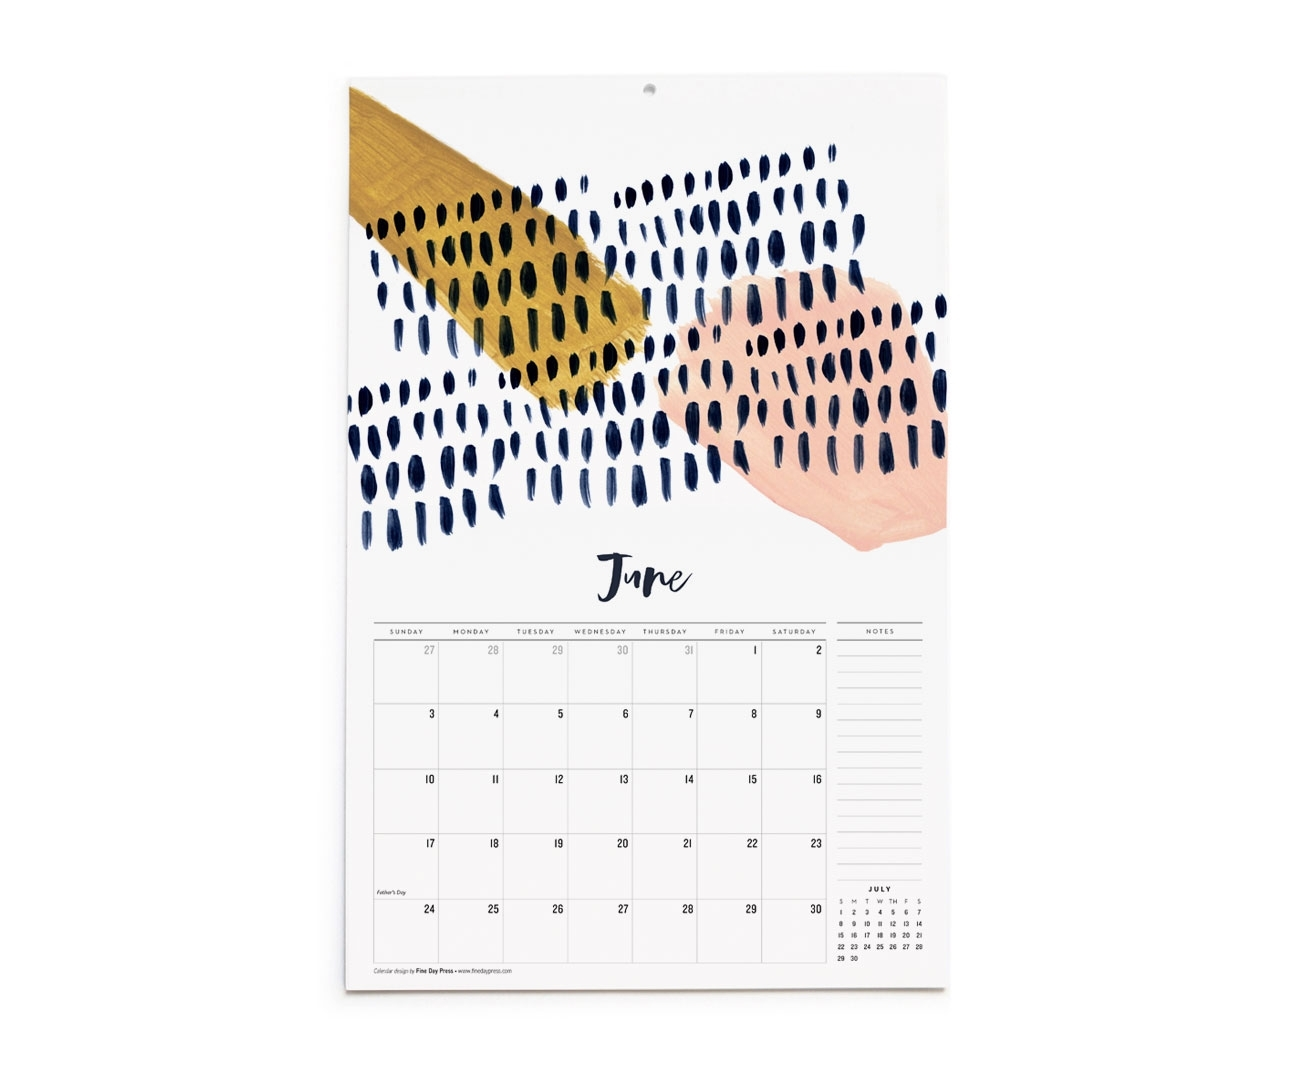 2018 Abstract Art Wall Calendar – Fine Day Press With Best And Newest Abstract Calendar Art Wall (View 4 of 20)